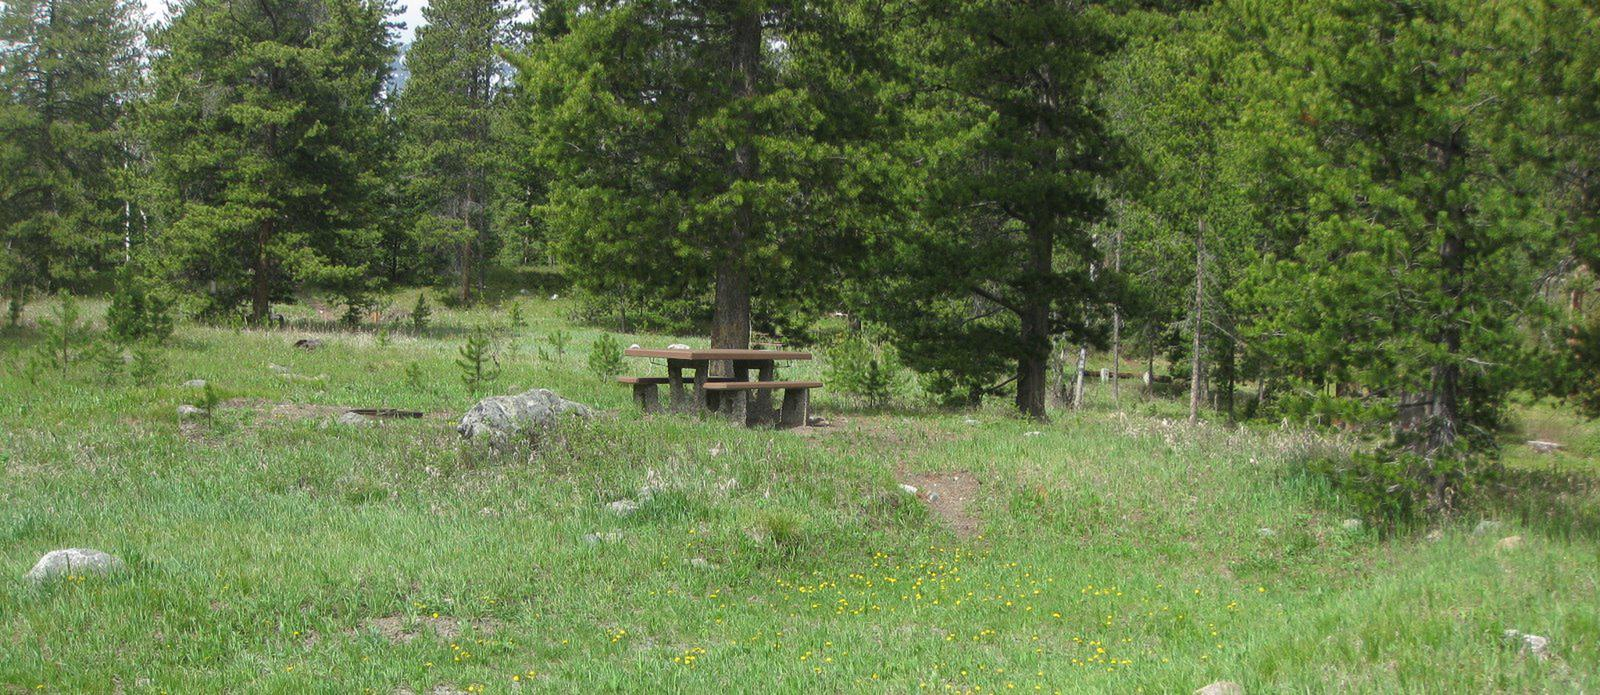 Site A24, campsite surrounded by pine trees, picnic table & fire ringSite A24